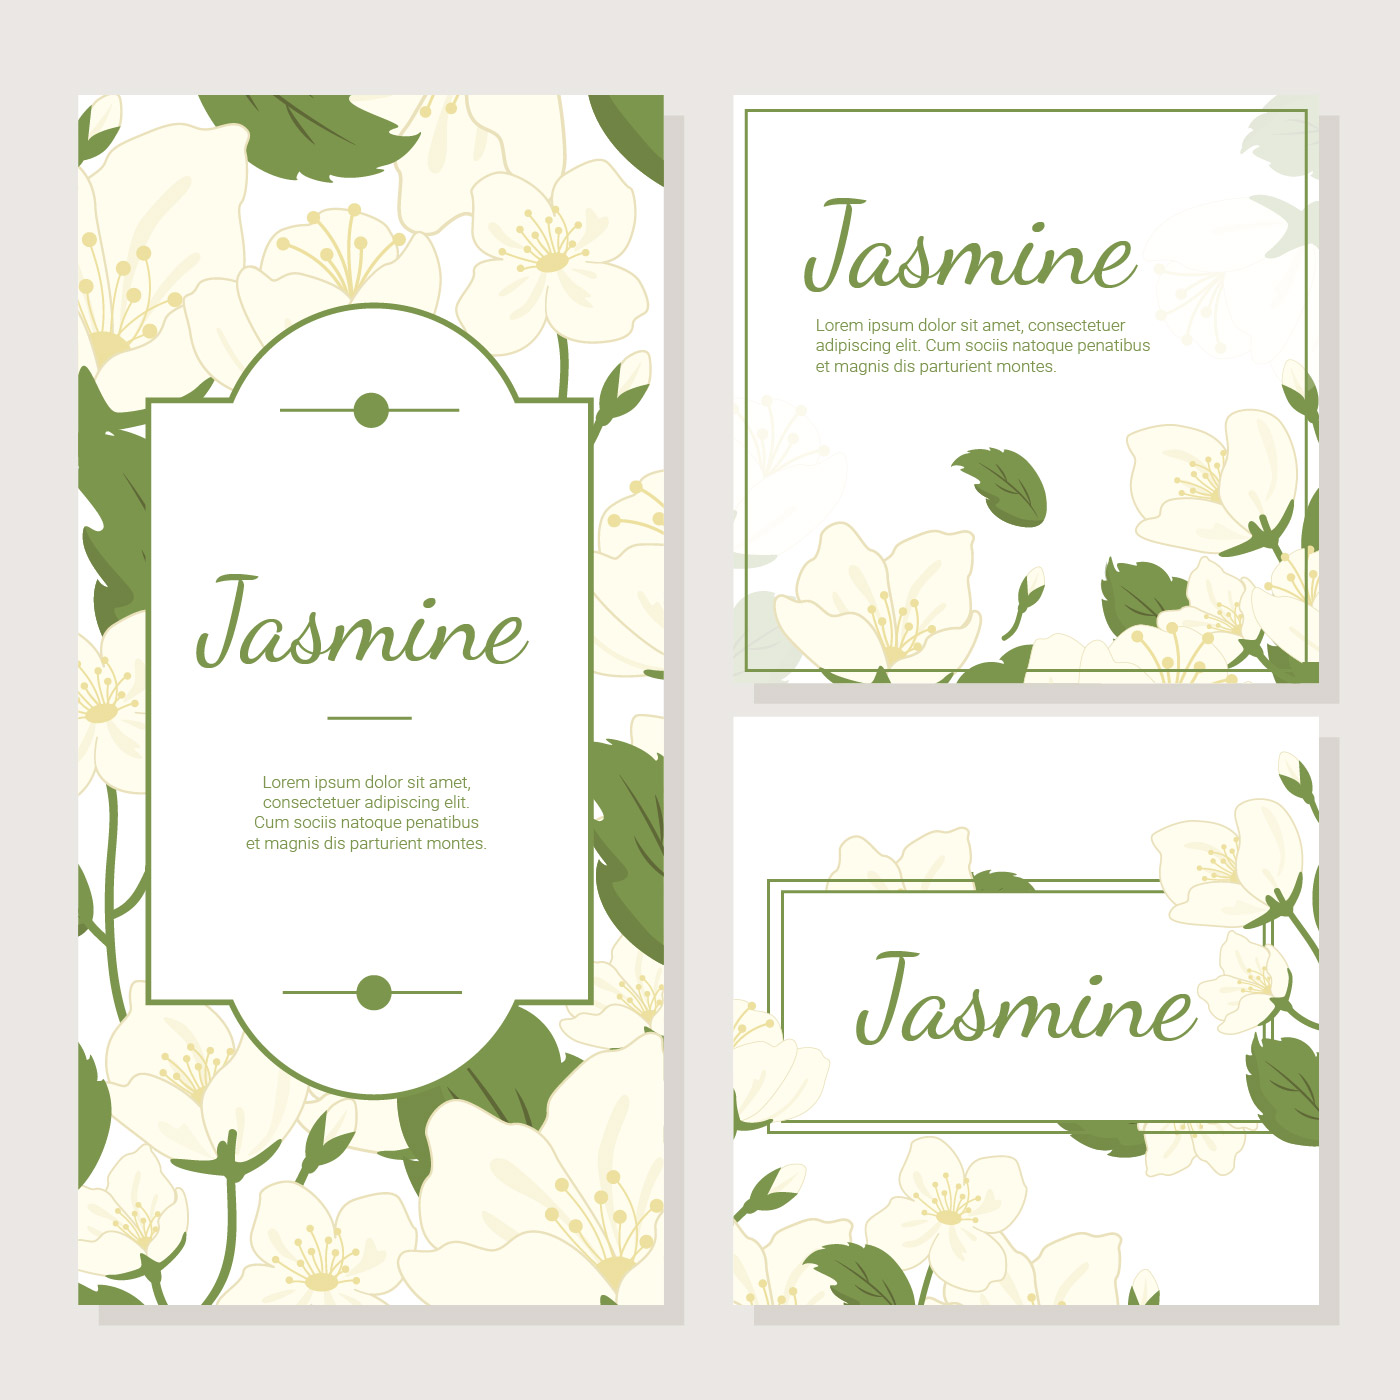 Invitation Card With Jasmine Flower Vector Download Free Vector